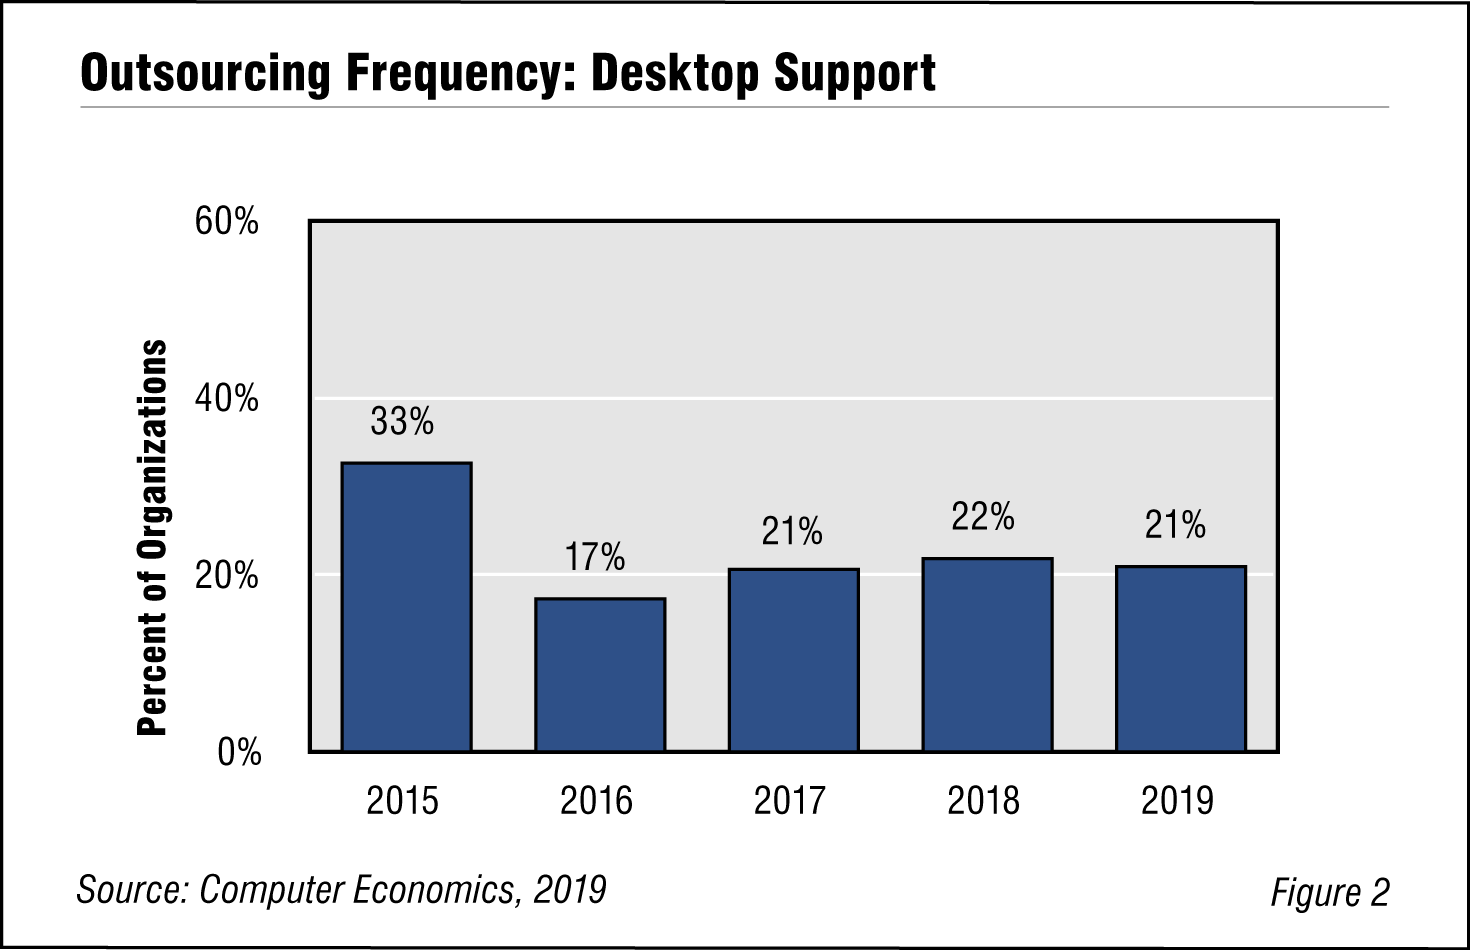 Fig. 2: Outsourcing Frequency: Desktop Support